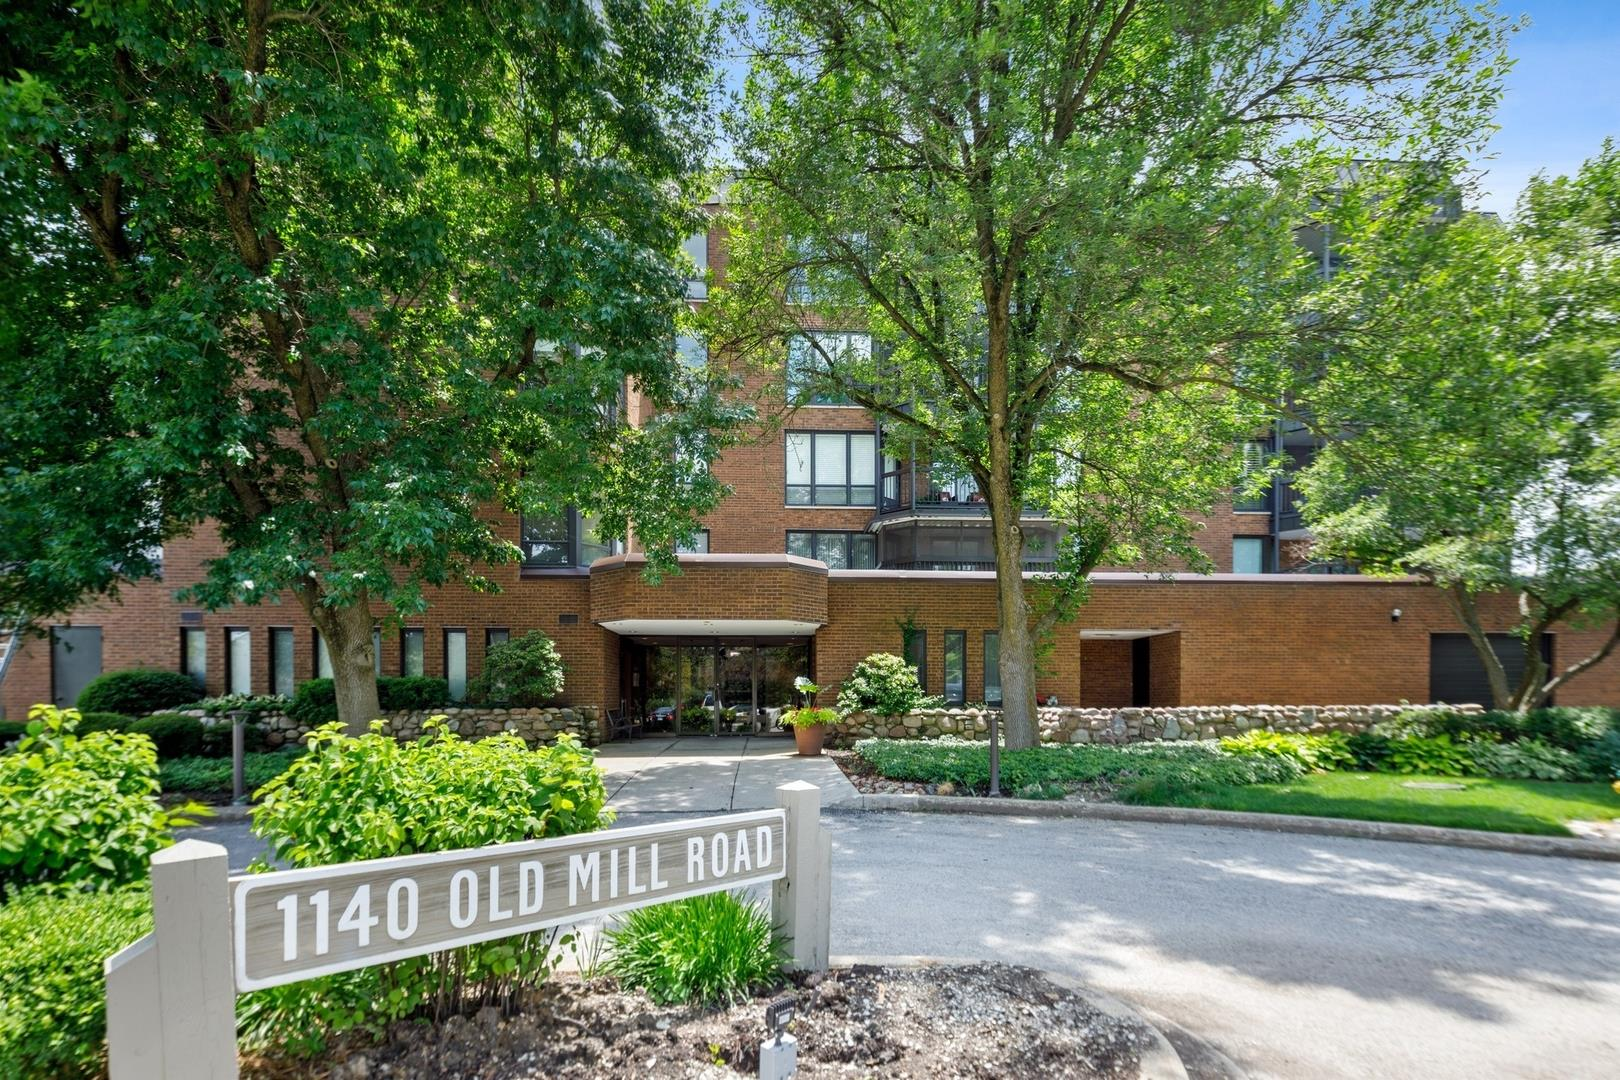 1140 Old Mill Road #406F, Hinsdale, IL 60521 - #: 10764868